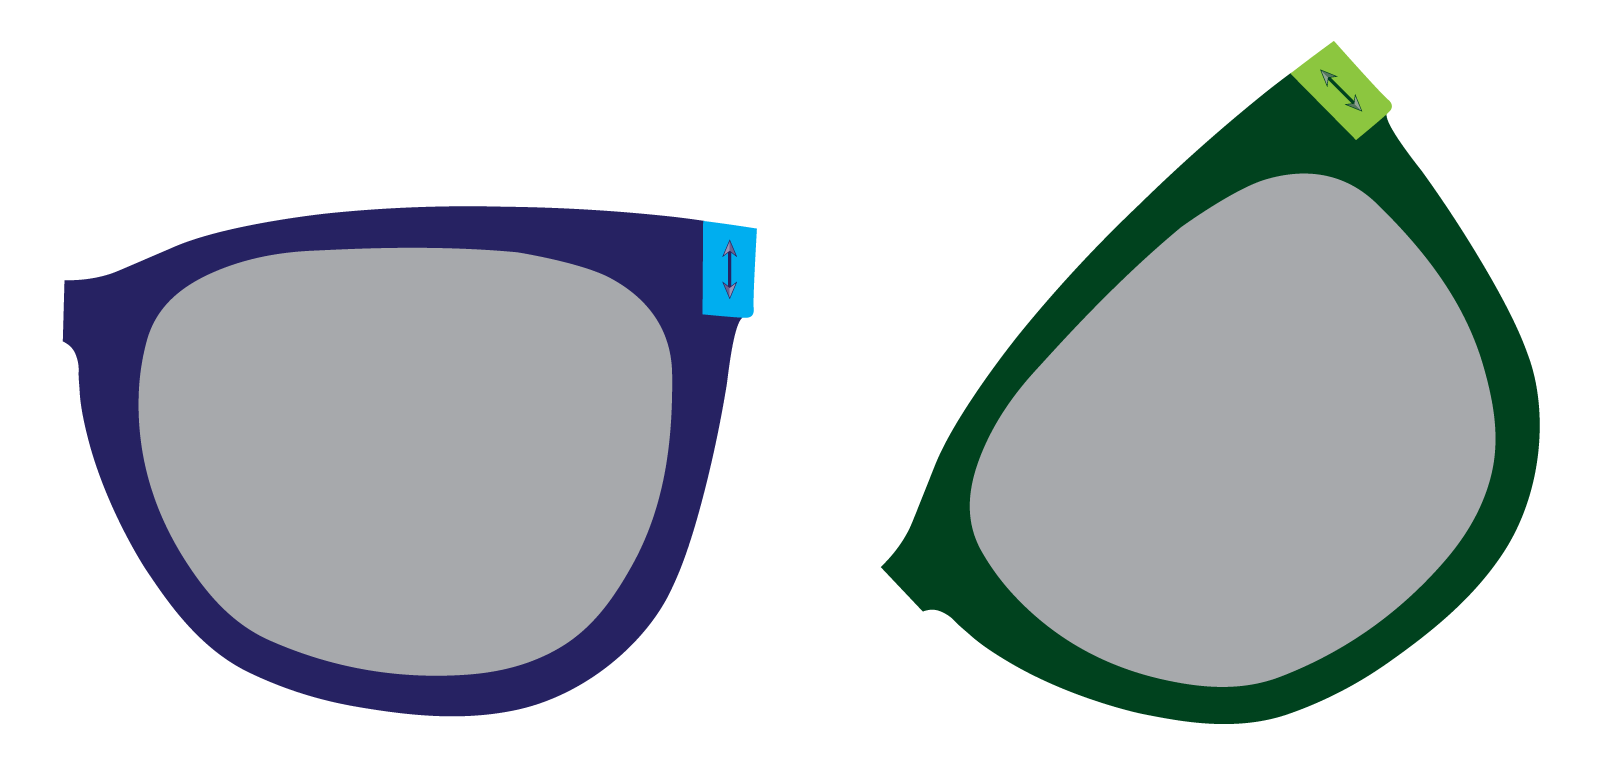 Regardless of how the glasses are held, exactly half of the unpolarized single photons will pass through the lens. Whether an unpolarized photon passes through the lens is perfectly random.